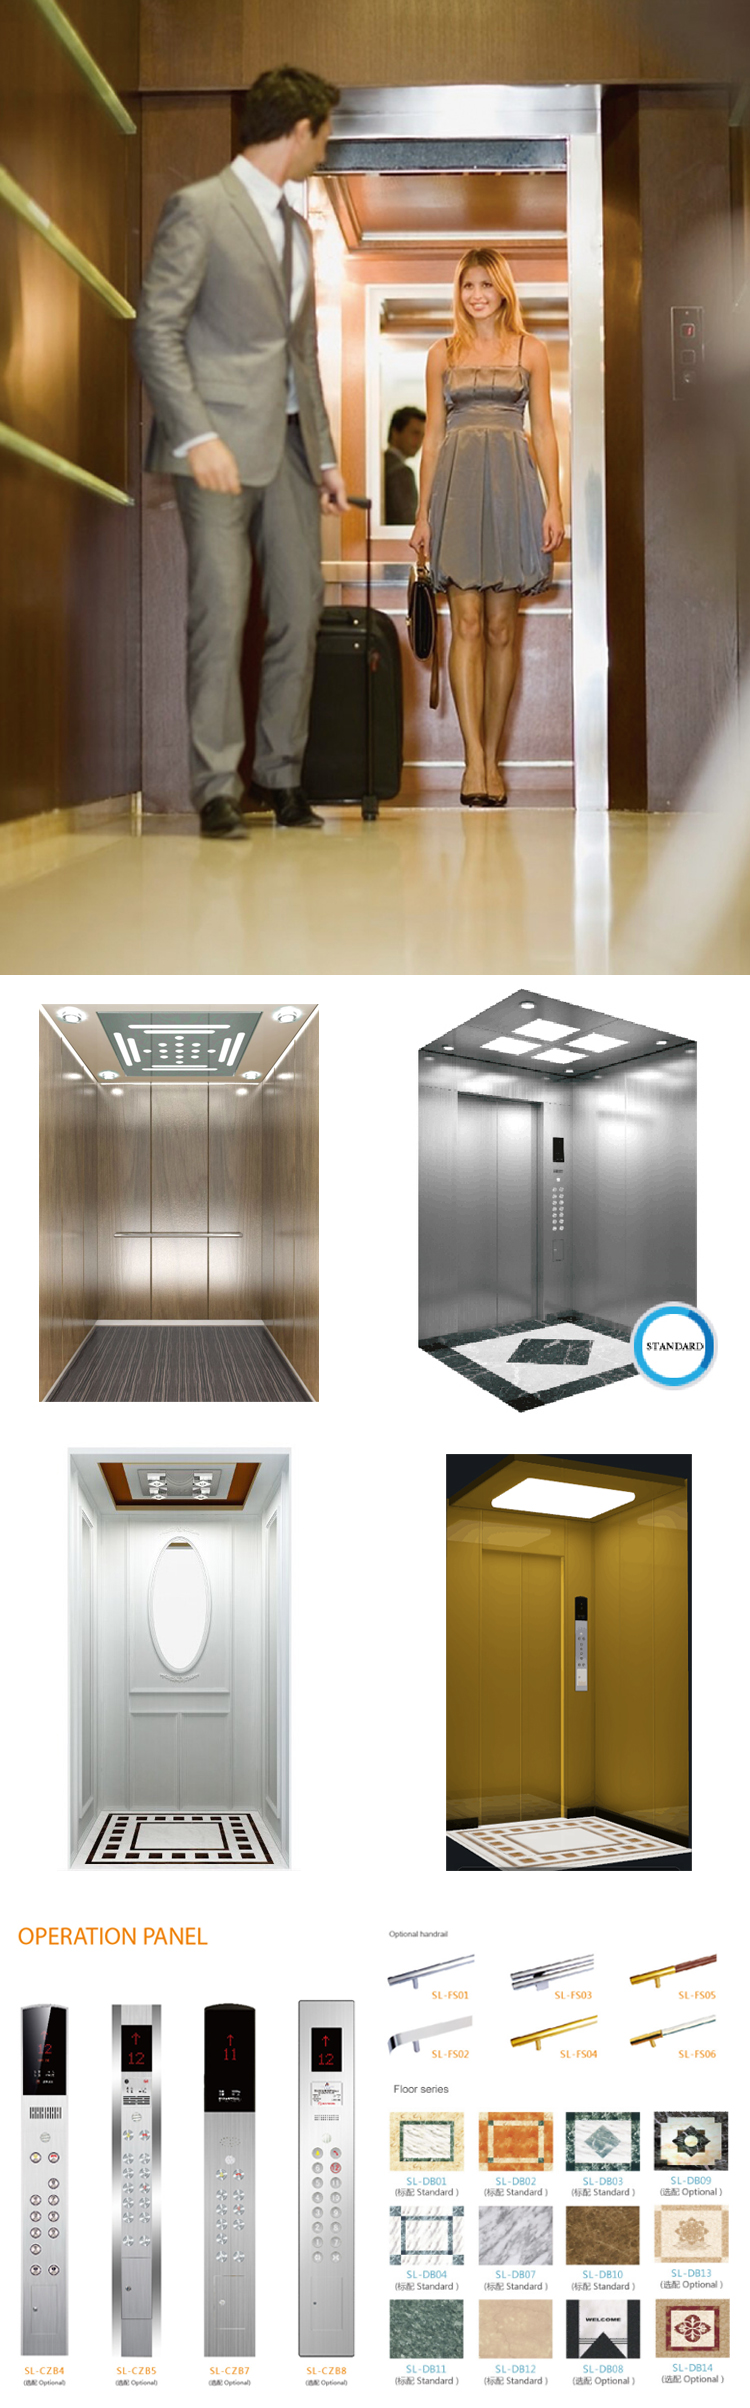 Used residential home elevators kits for sale buy for Home elevator kits